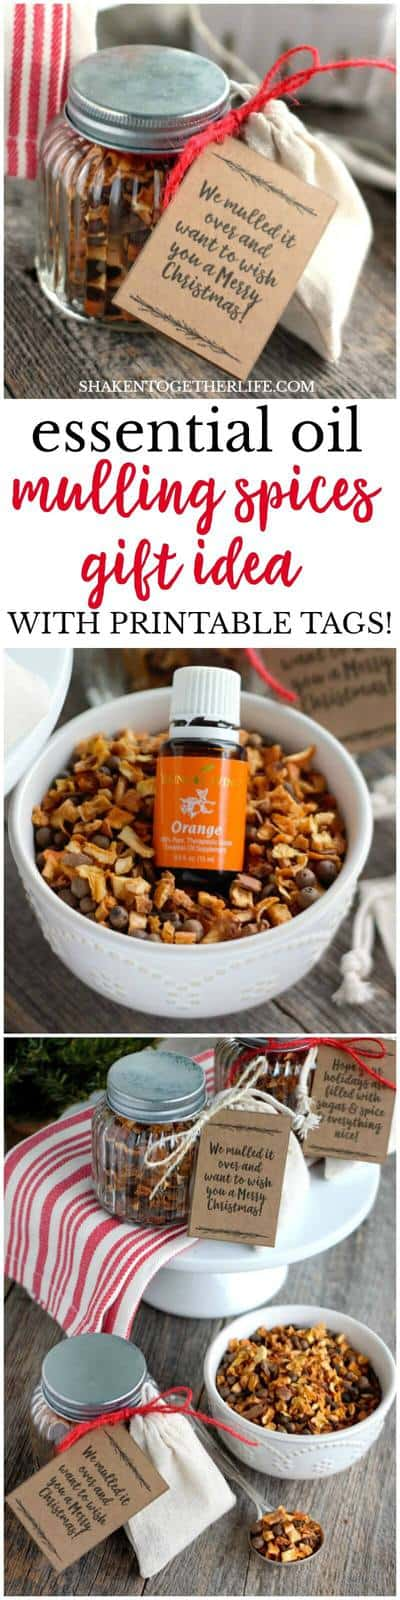 essential oils mulling spices gift printable tags